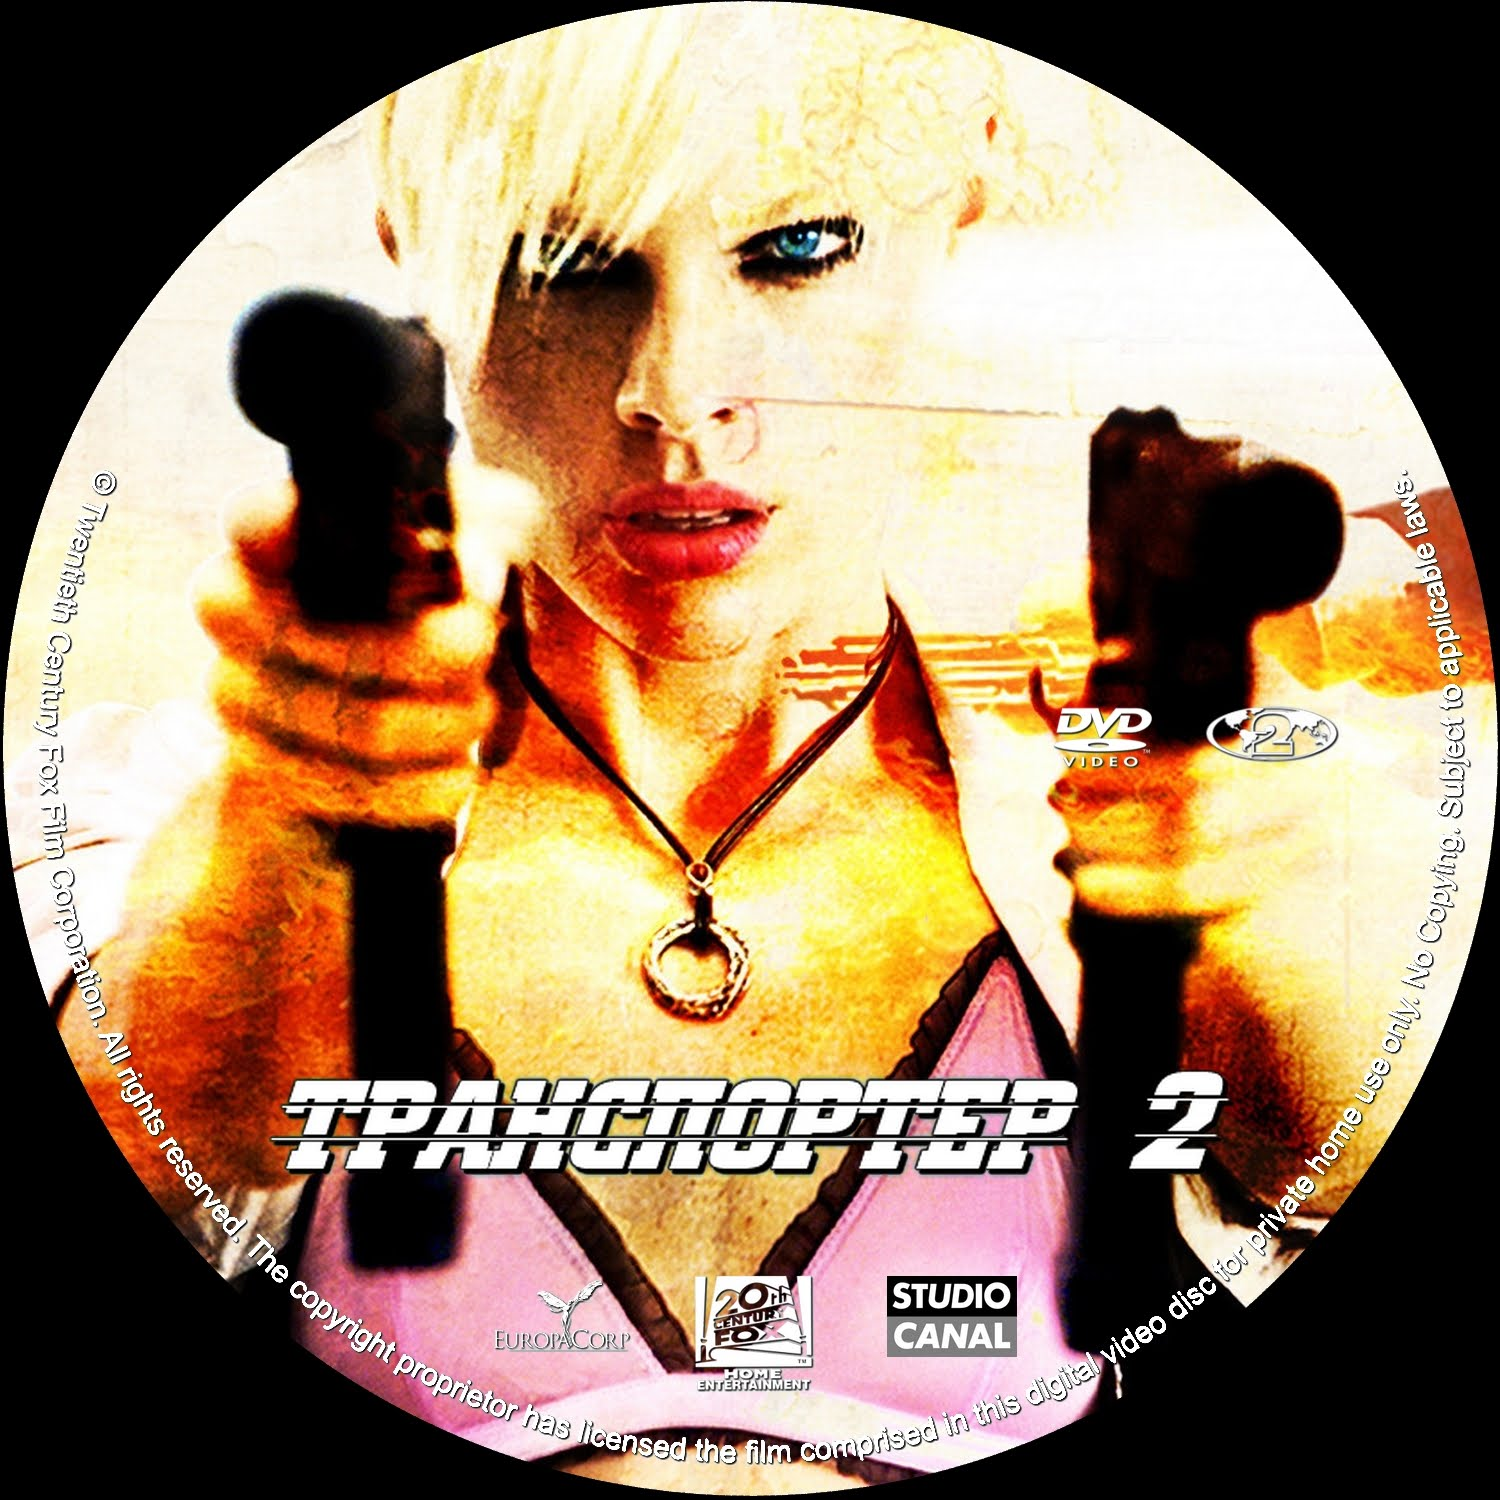 Image Gallery for The Transporter 2 - FilmAffinity |Transporter 2 Dvd Cover